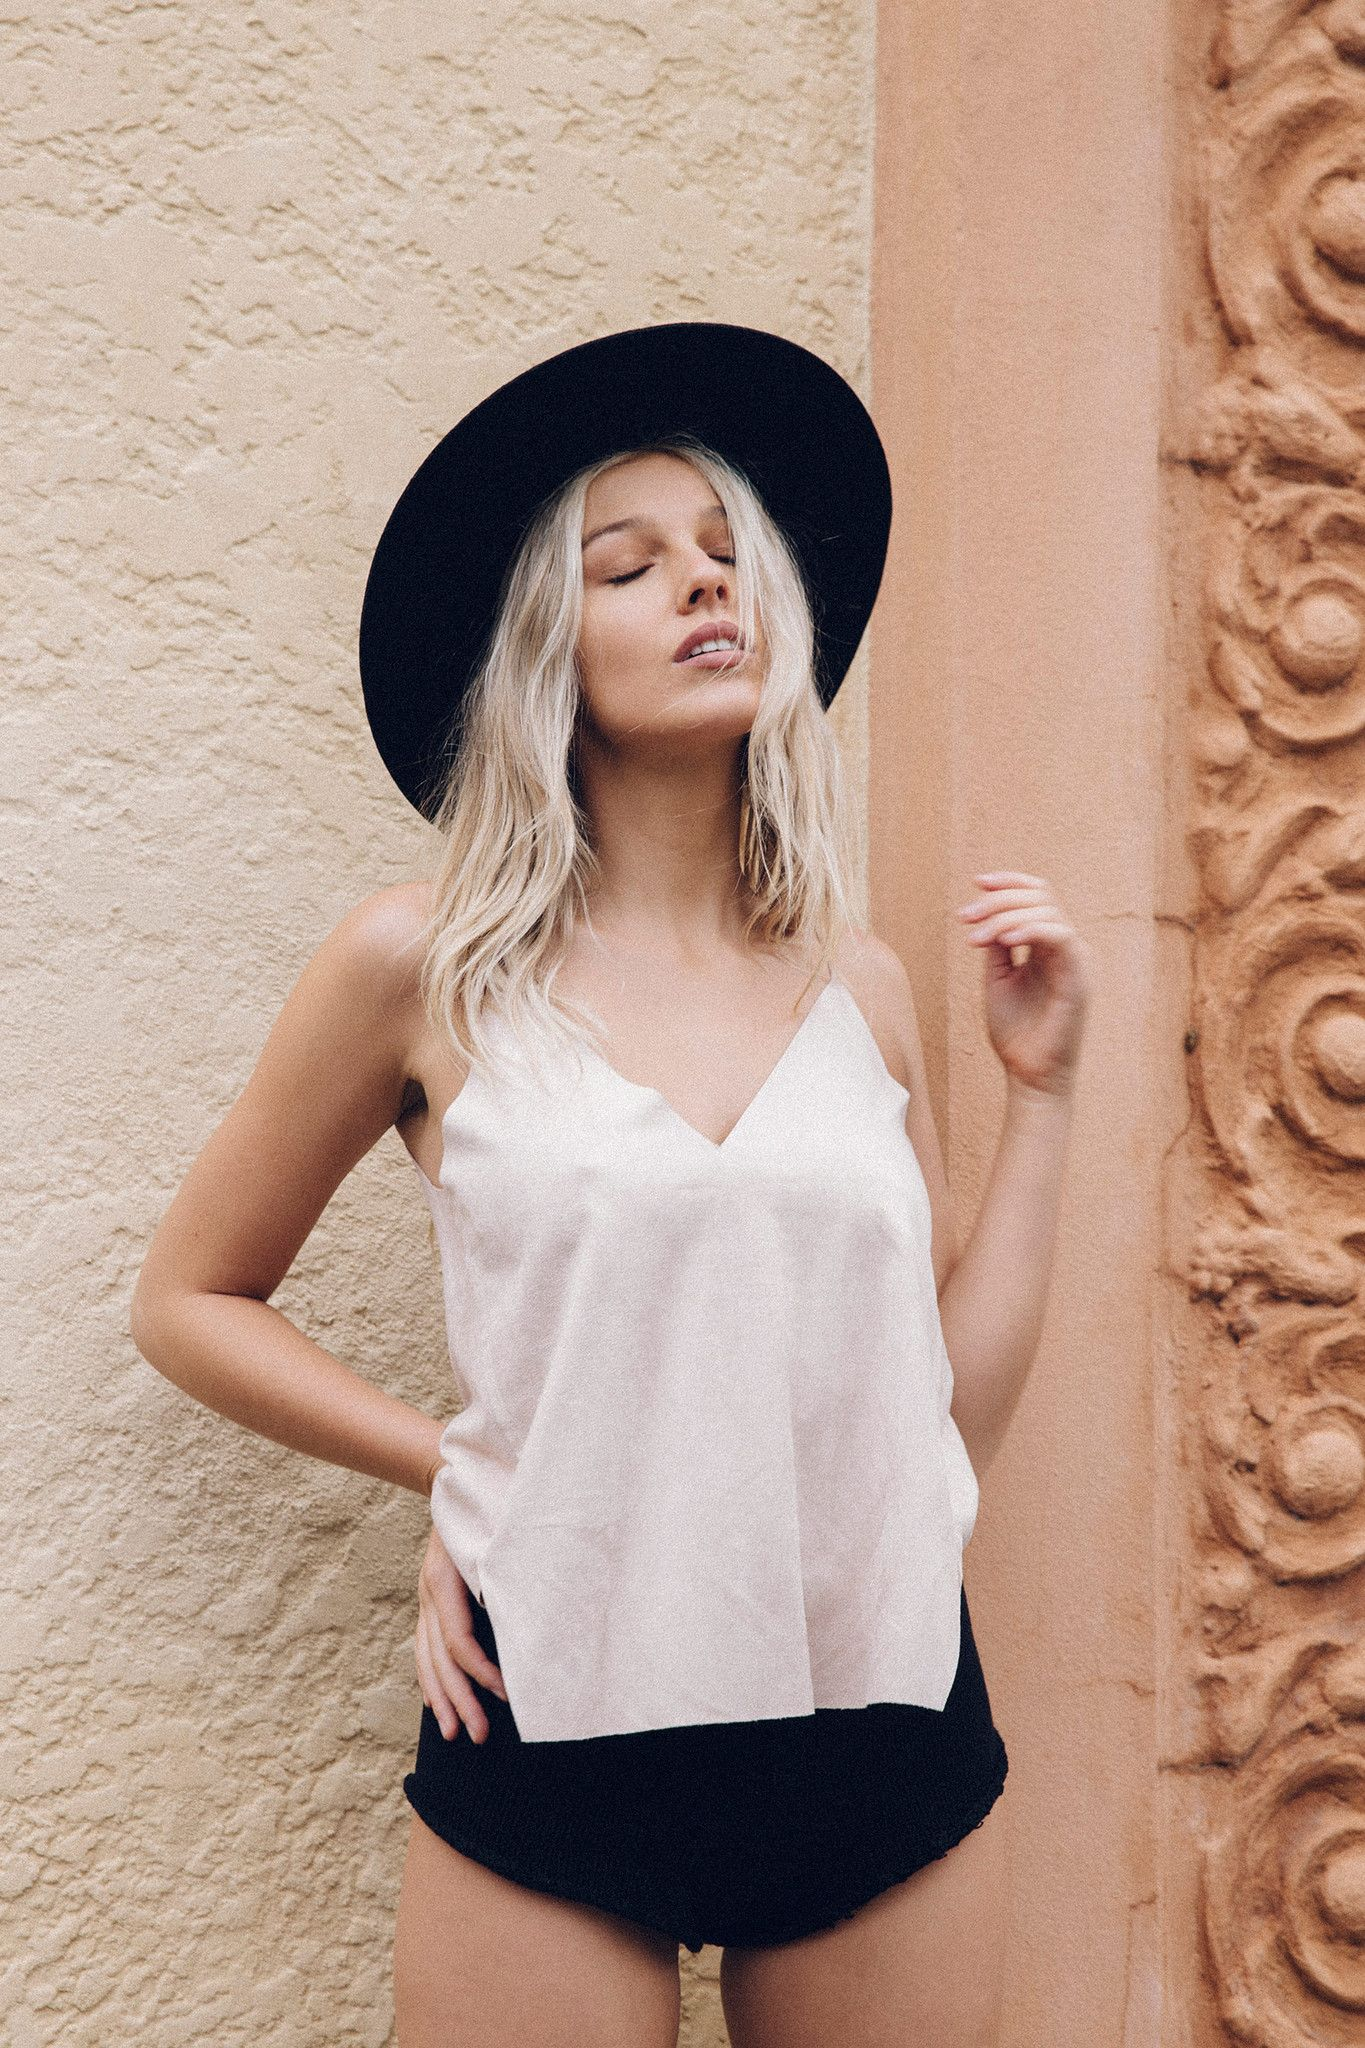 571bb3fcdde Suede Mink Cami Top - Women s Clothing  amp  Fashion Online – Style Addict  White Summer